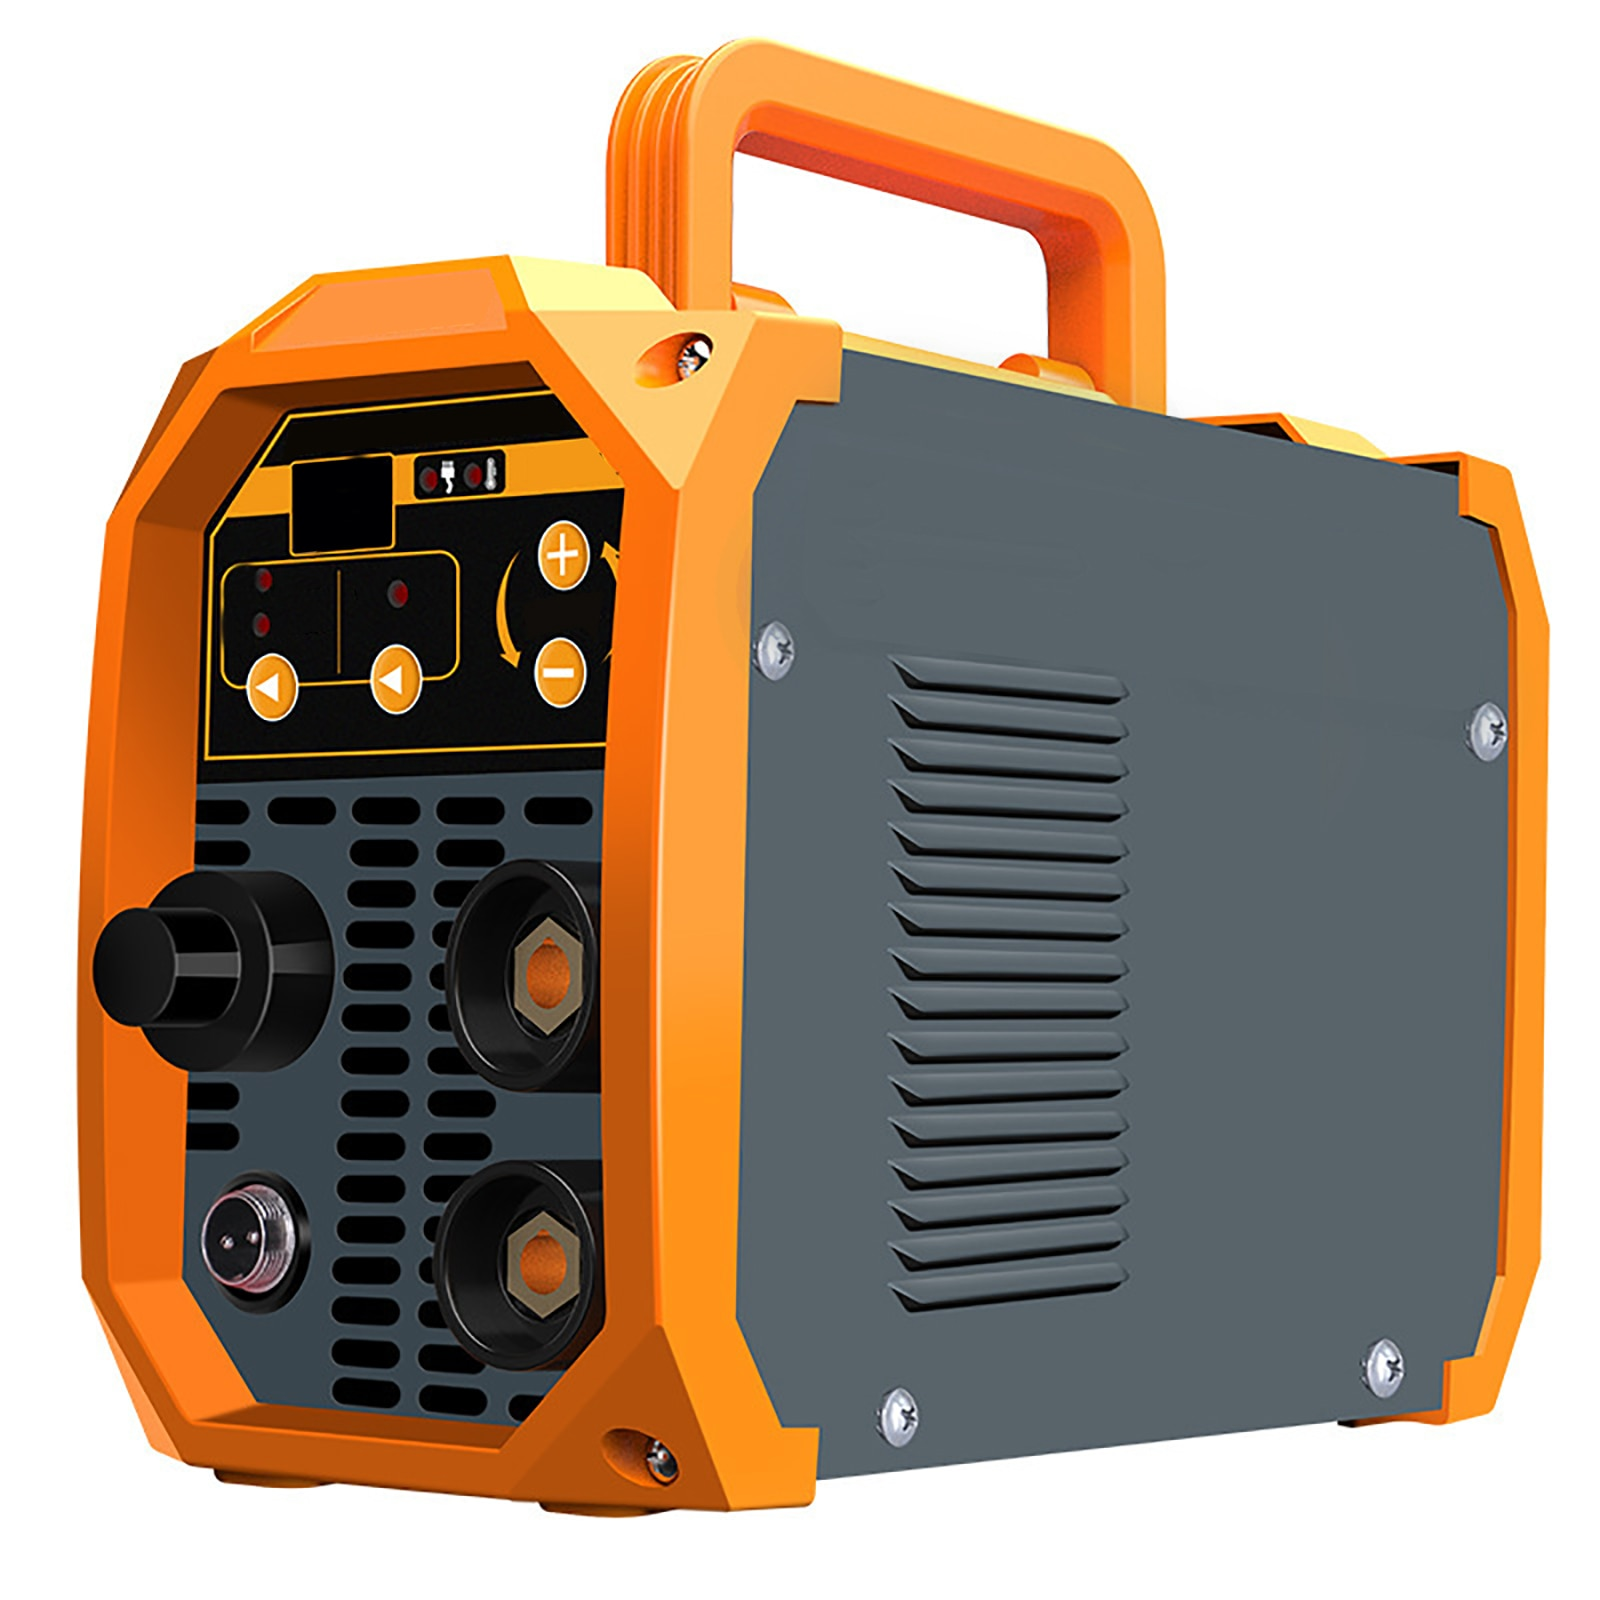 Stainless Steel Electric Welding Machine Household Small Compact Argon Arc Welding Machine Power Tool 220V Multi-function